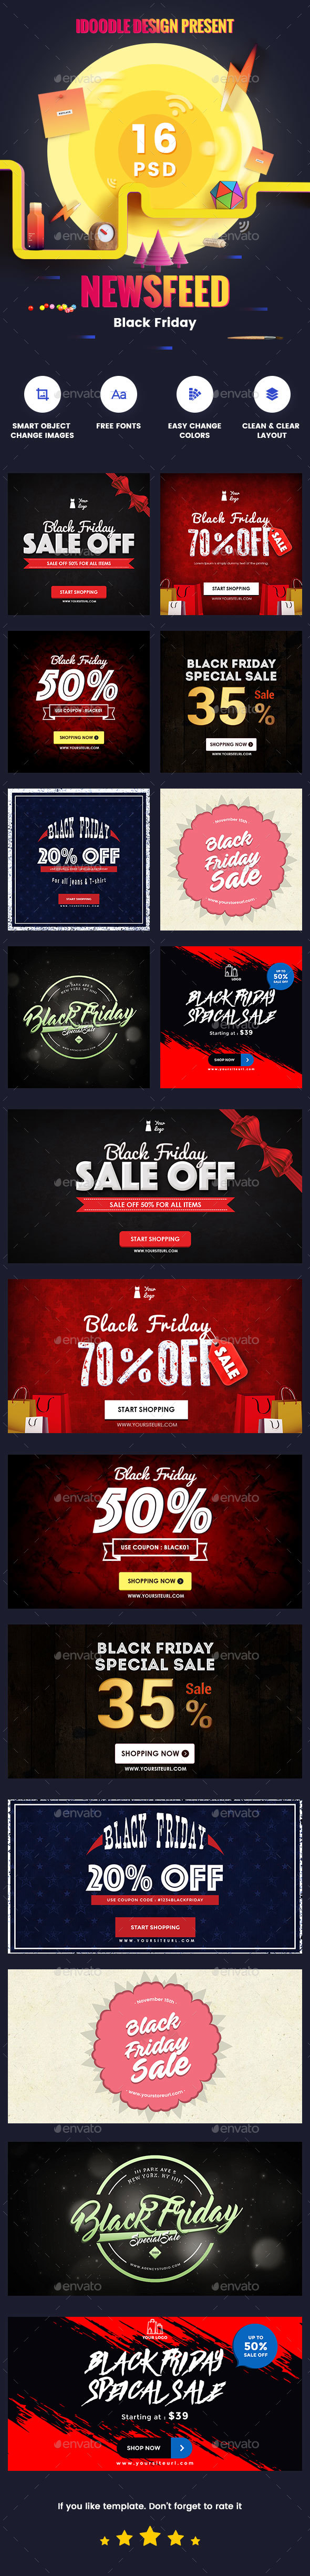 BlackFriday NewsFeed Banners Ads - 16 PSD [02 Size Each] - Banners & Ads Web Elements